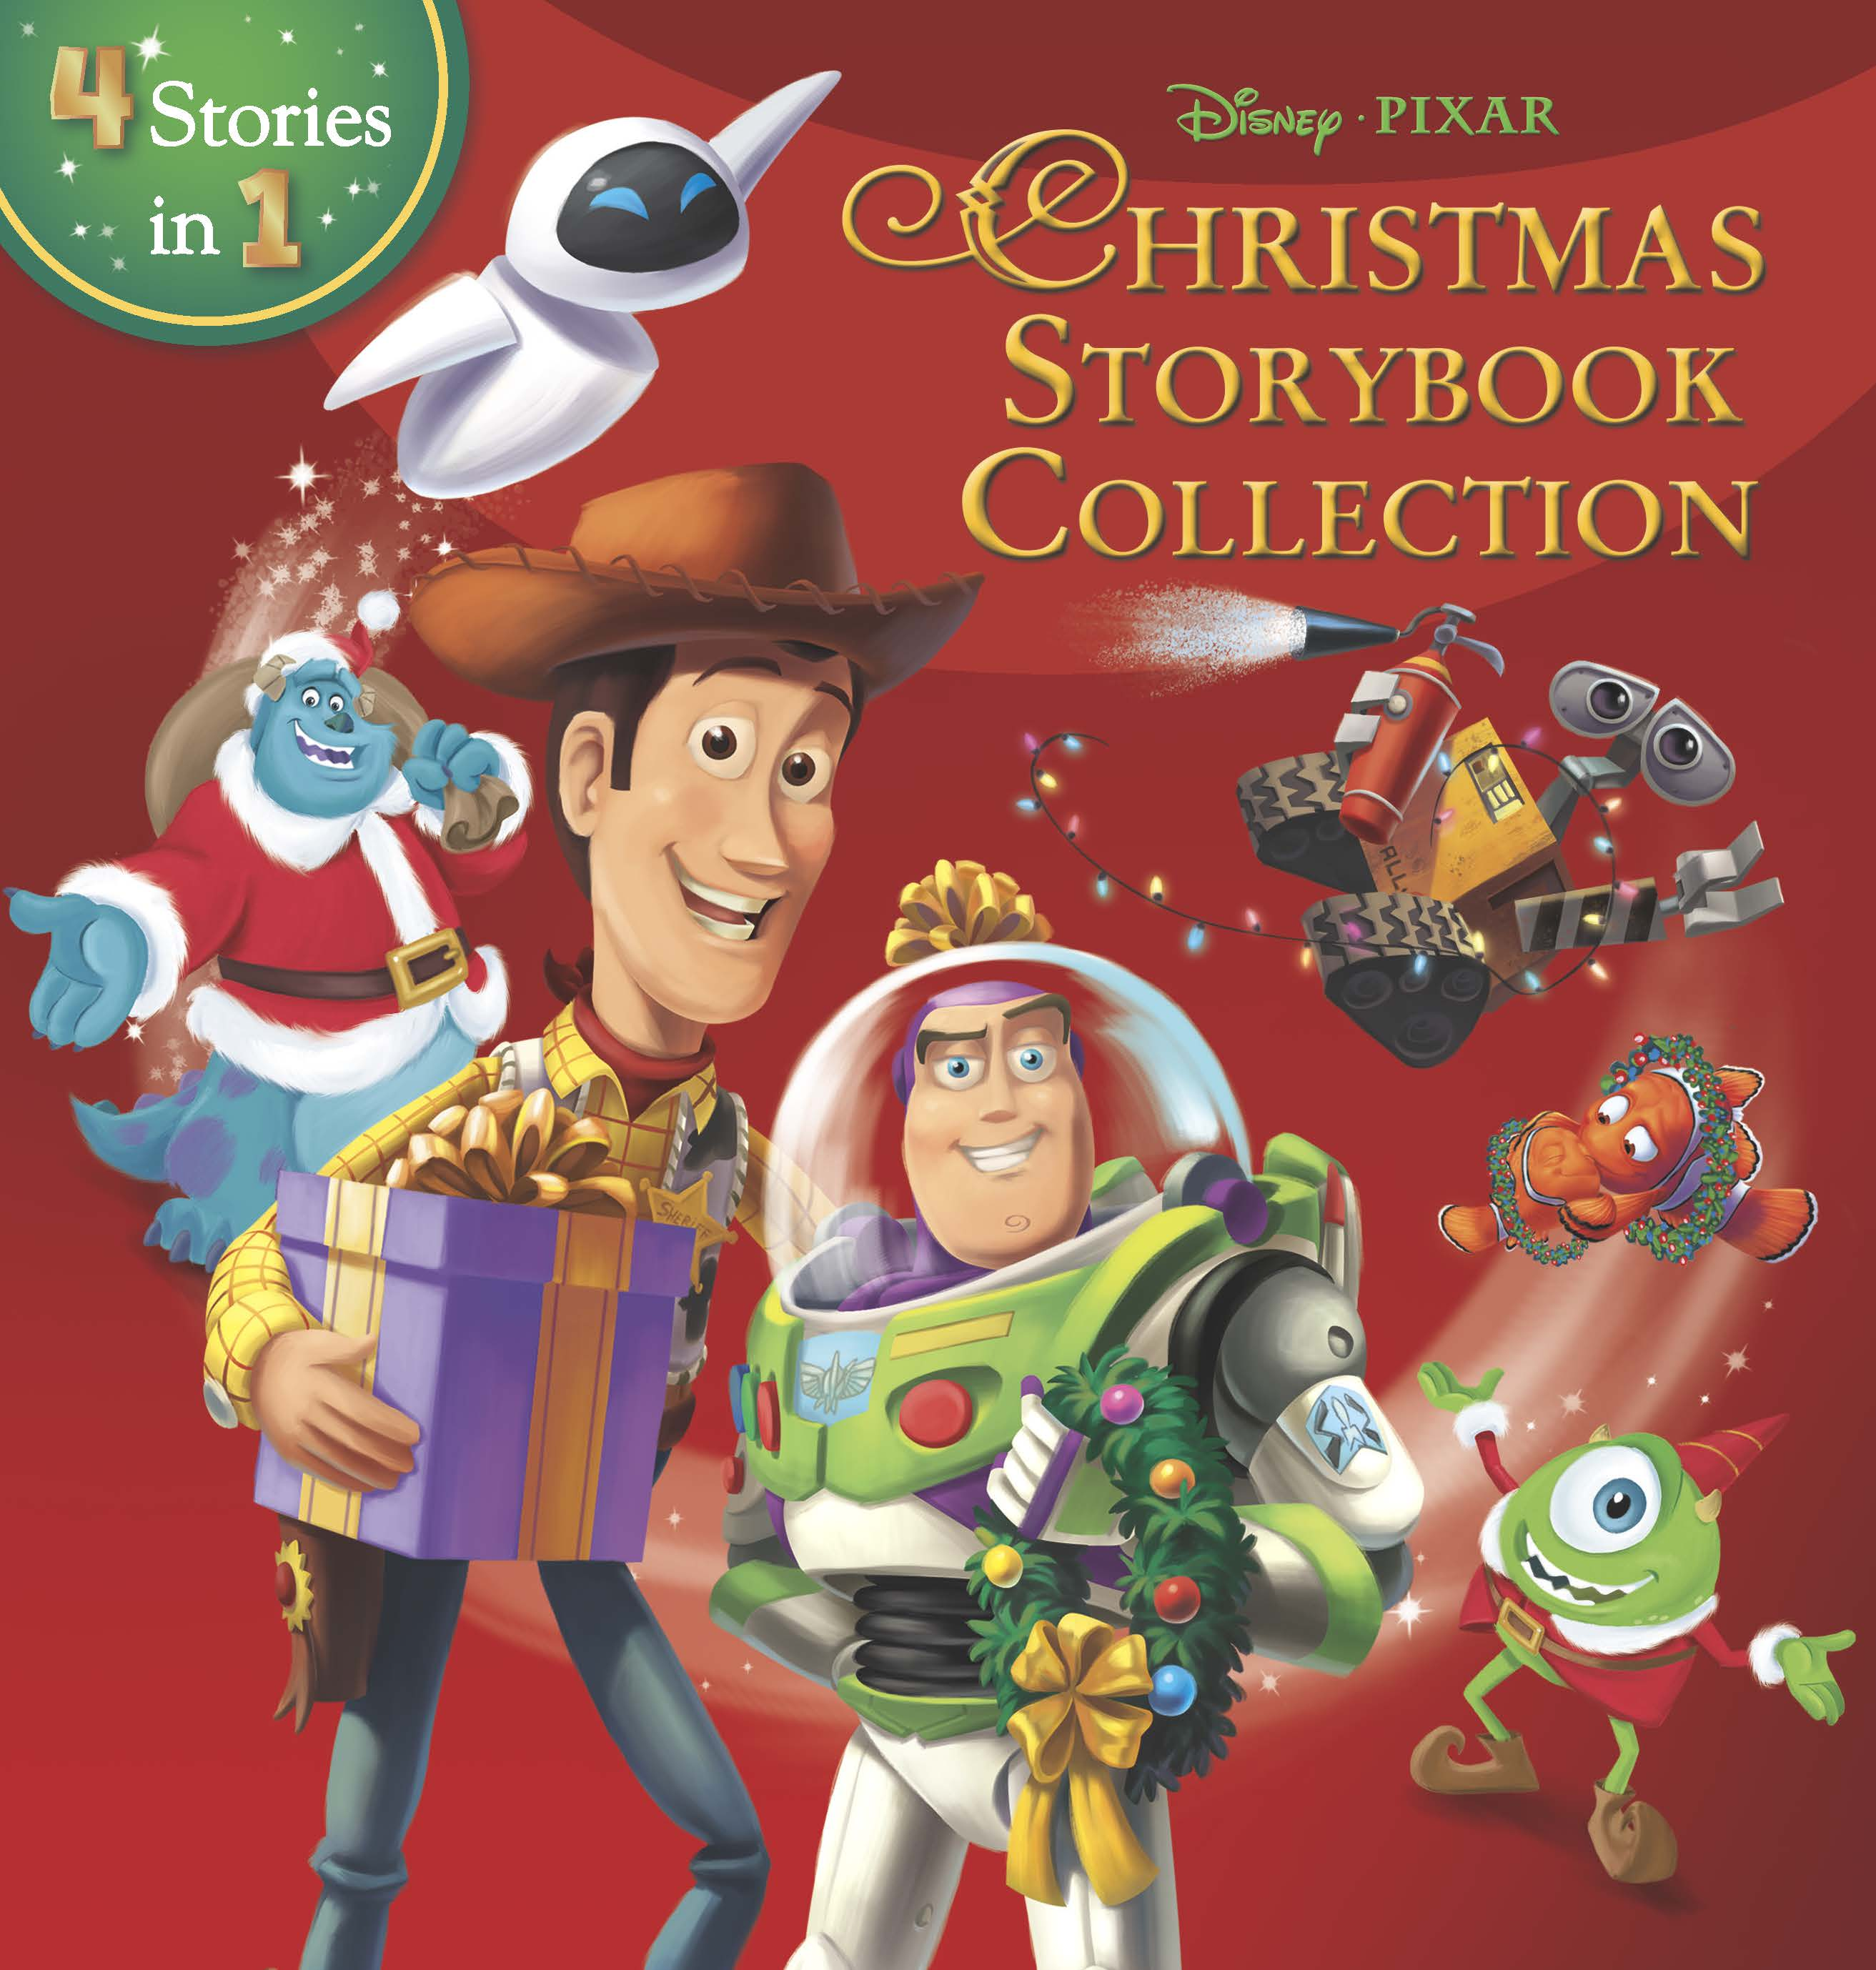 DisneyPixar Christmas Storybook Collection